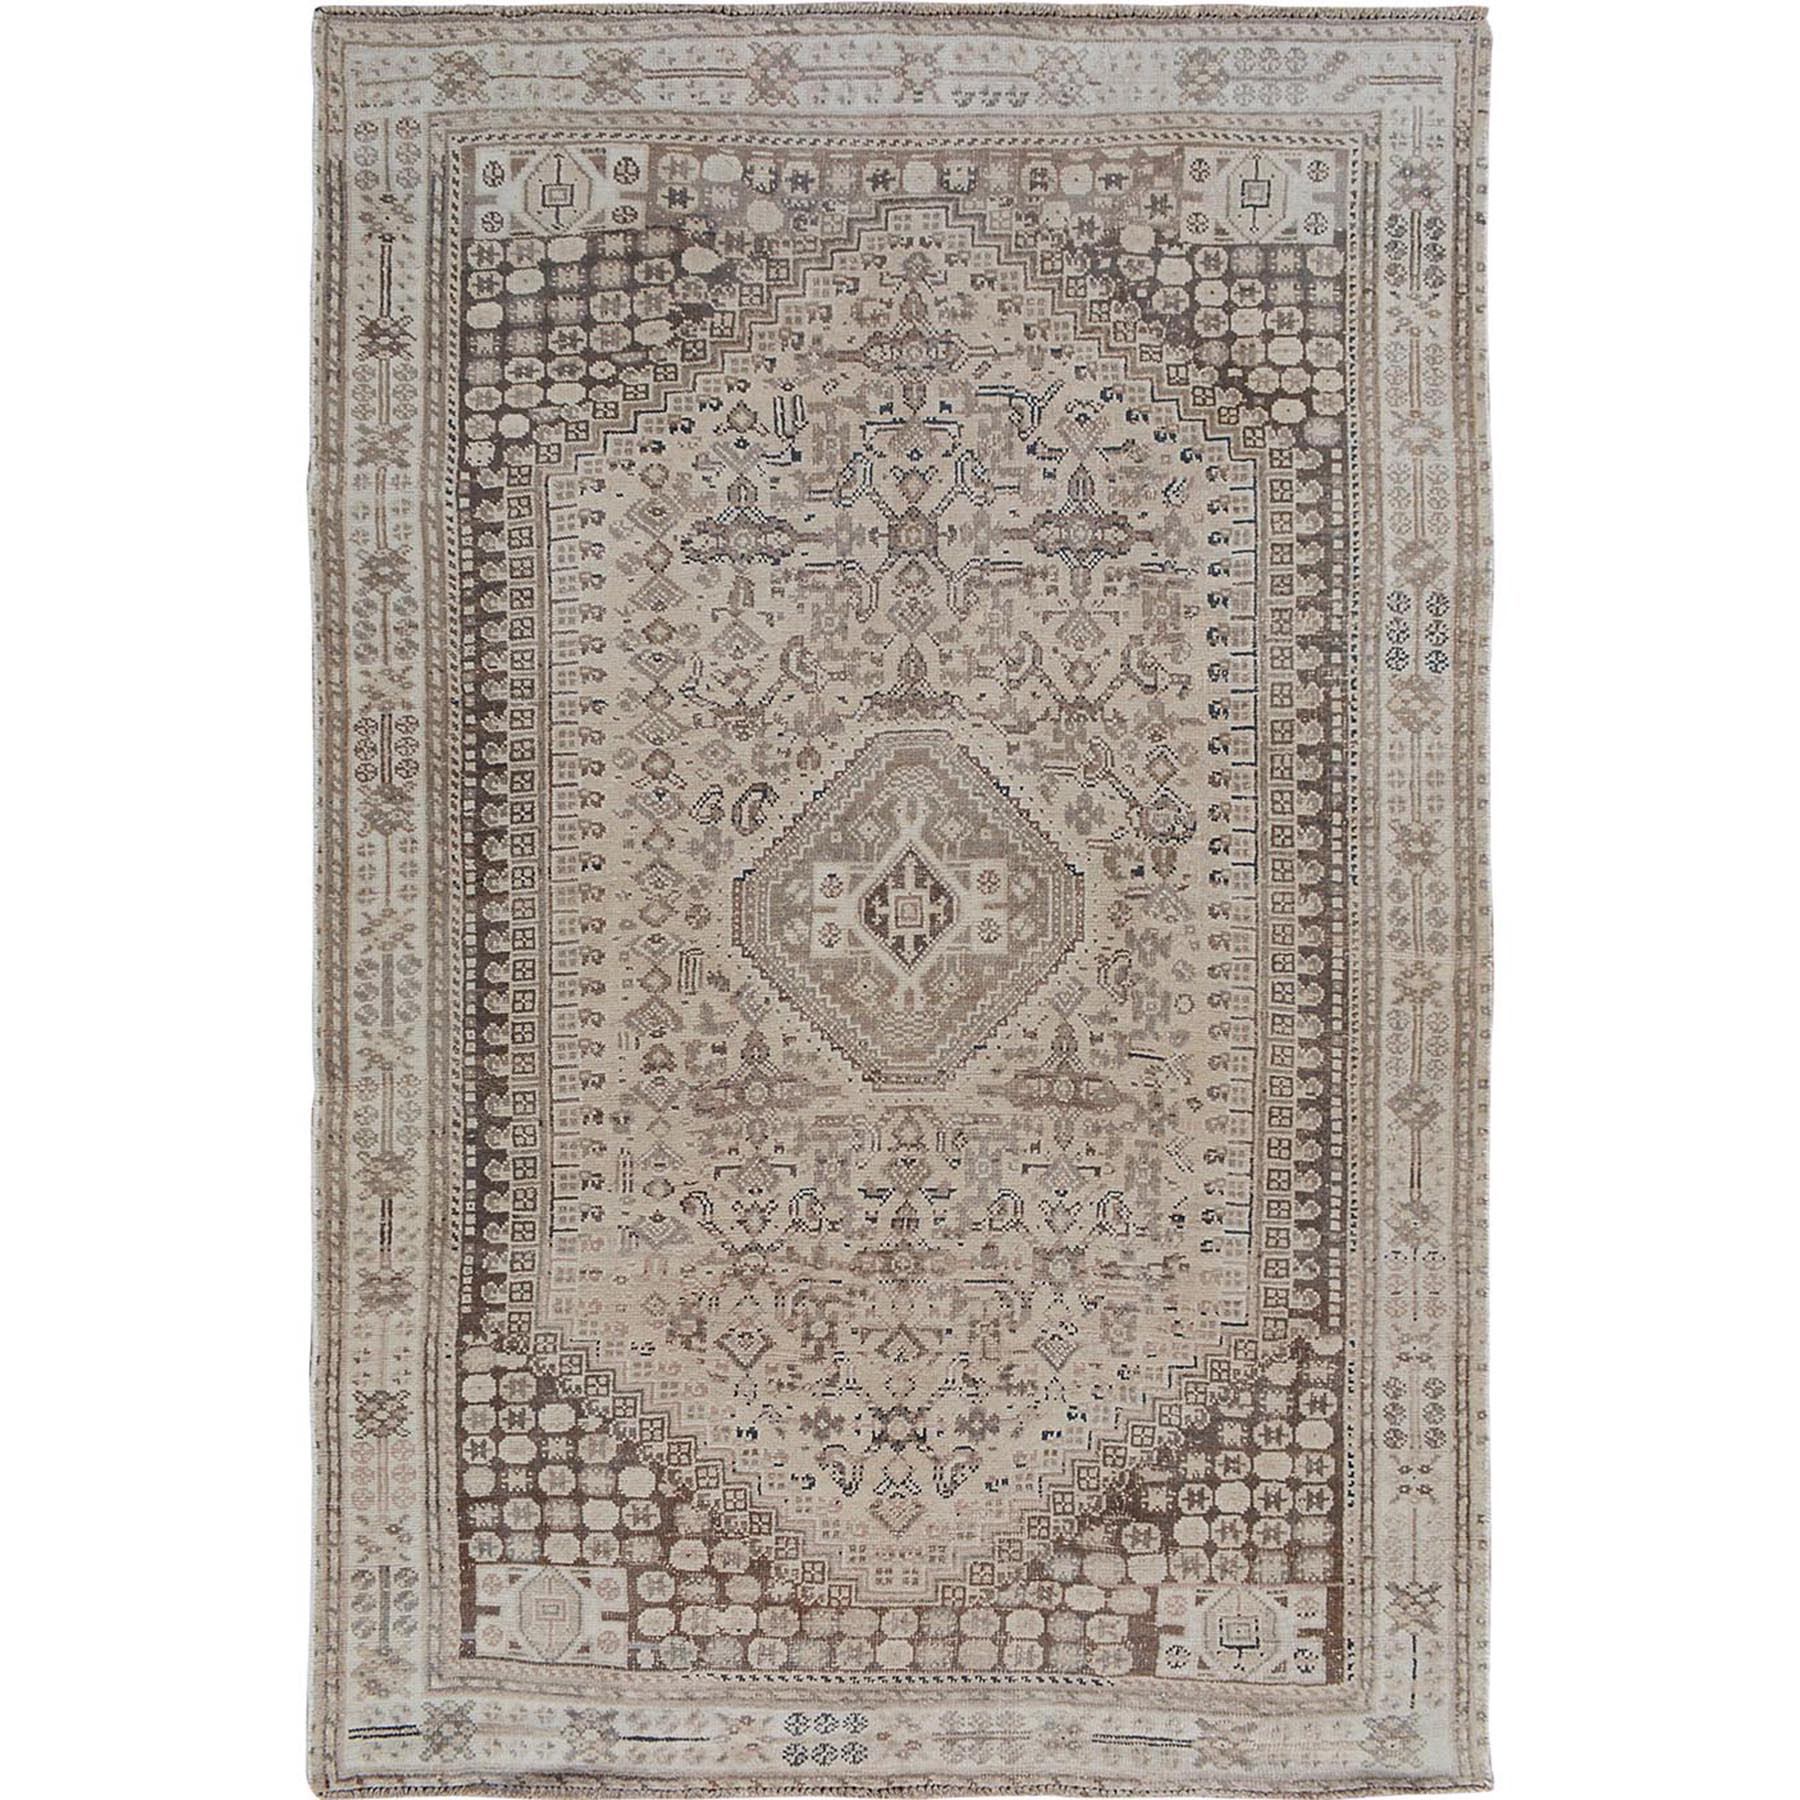 "5'6""x8'2"" Natural Colors Old and Worn Down Persian Qashqai Pure Wool Hand Knotted Oriental Rug"